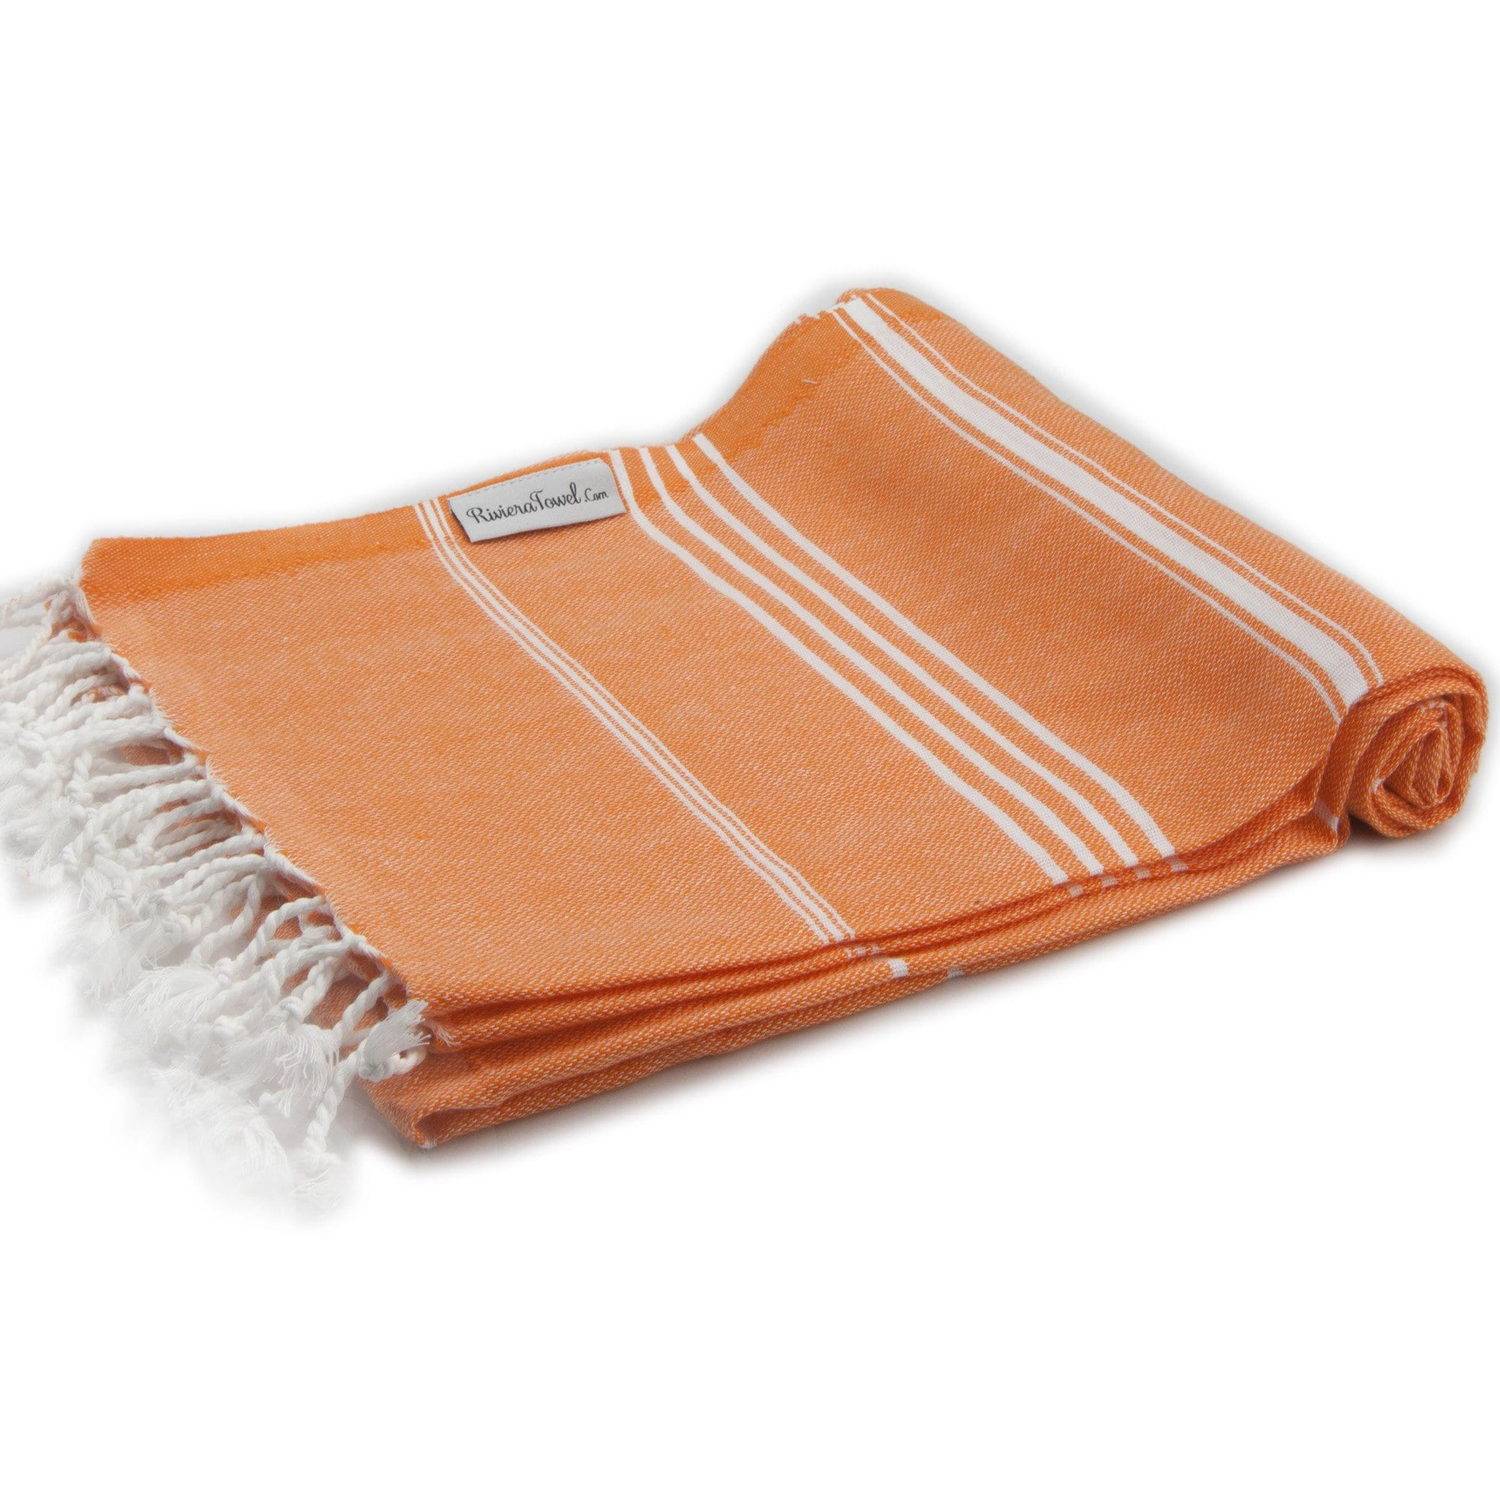 Essential Turkish Towel With Images Turkish Towels Turkish